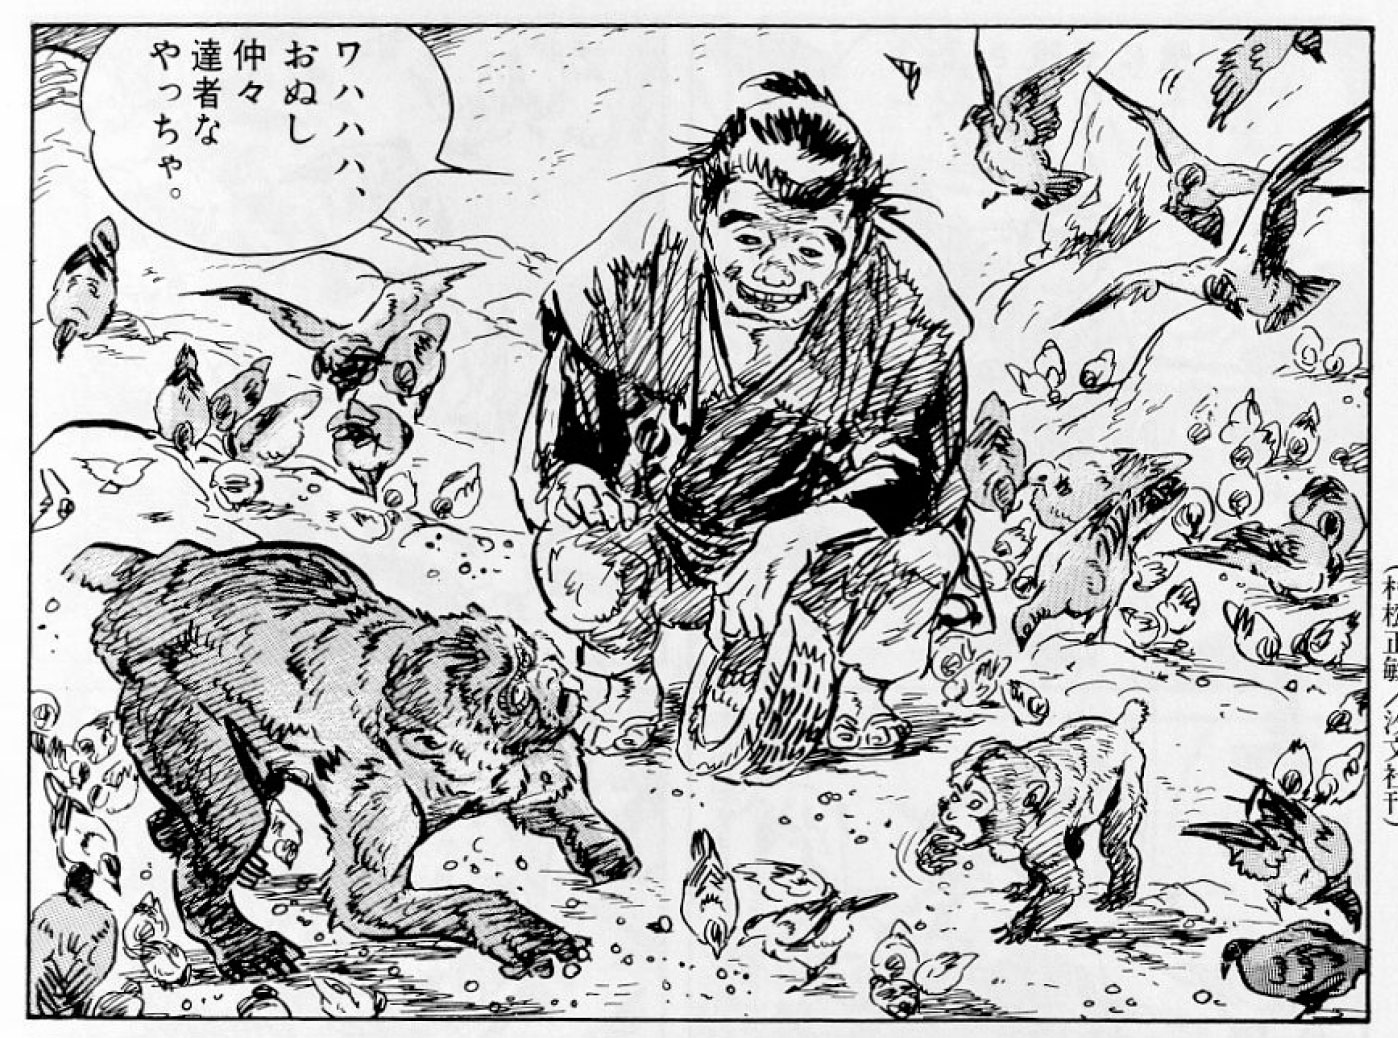 From Sanpei Shirato's Kamui